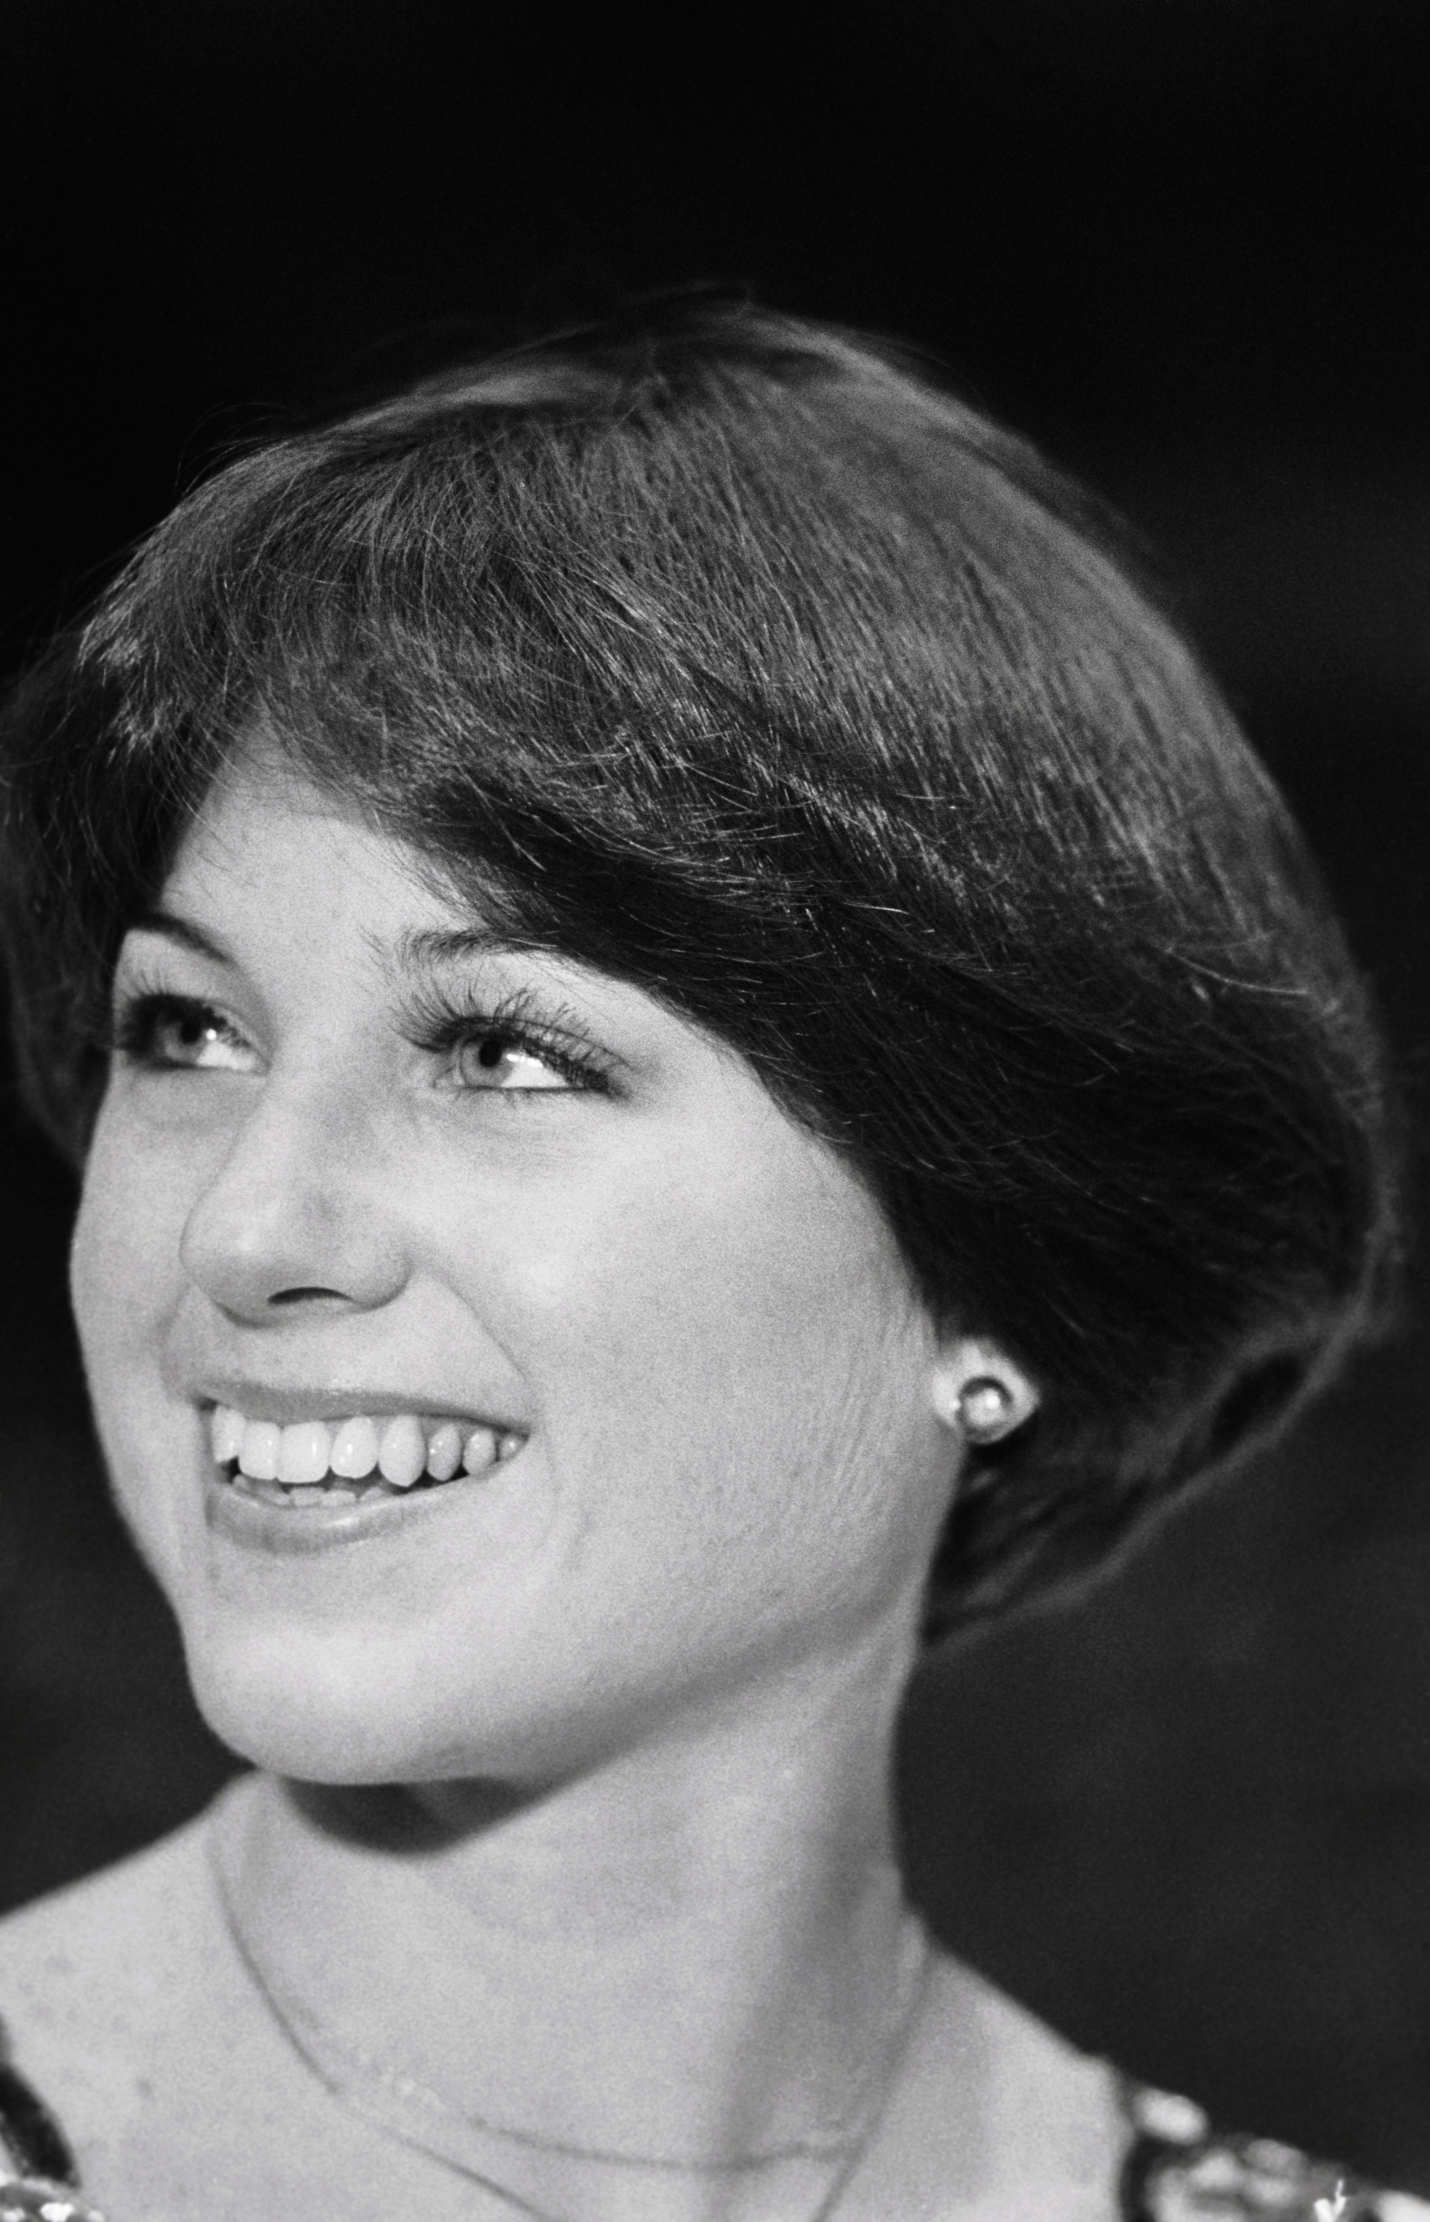 just before the 1976 winter olympics, dorothy hamill had her